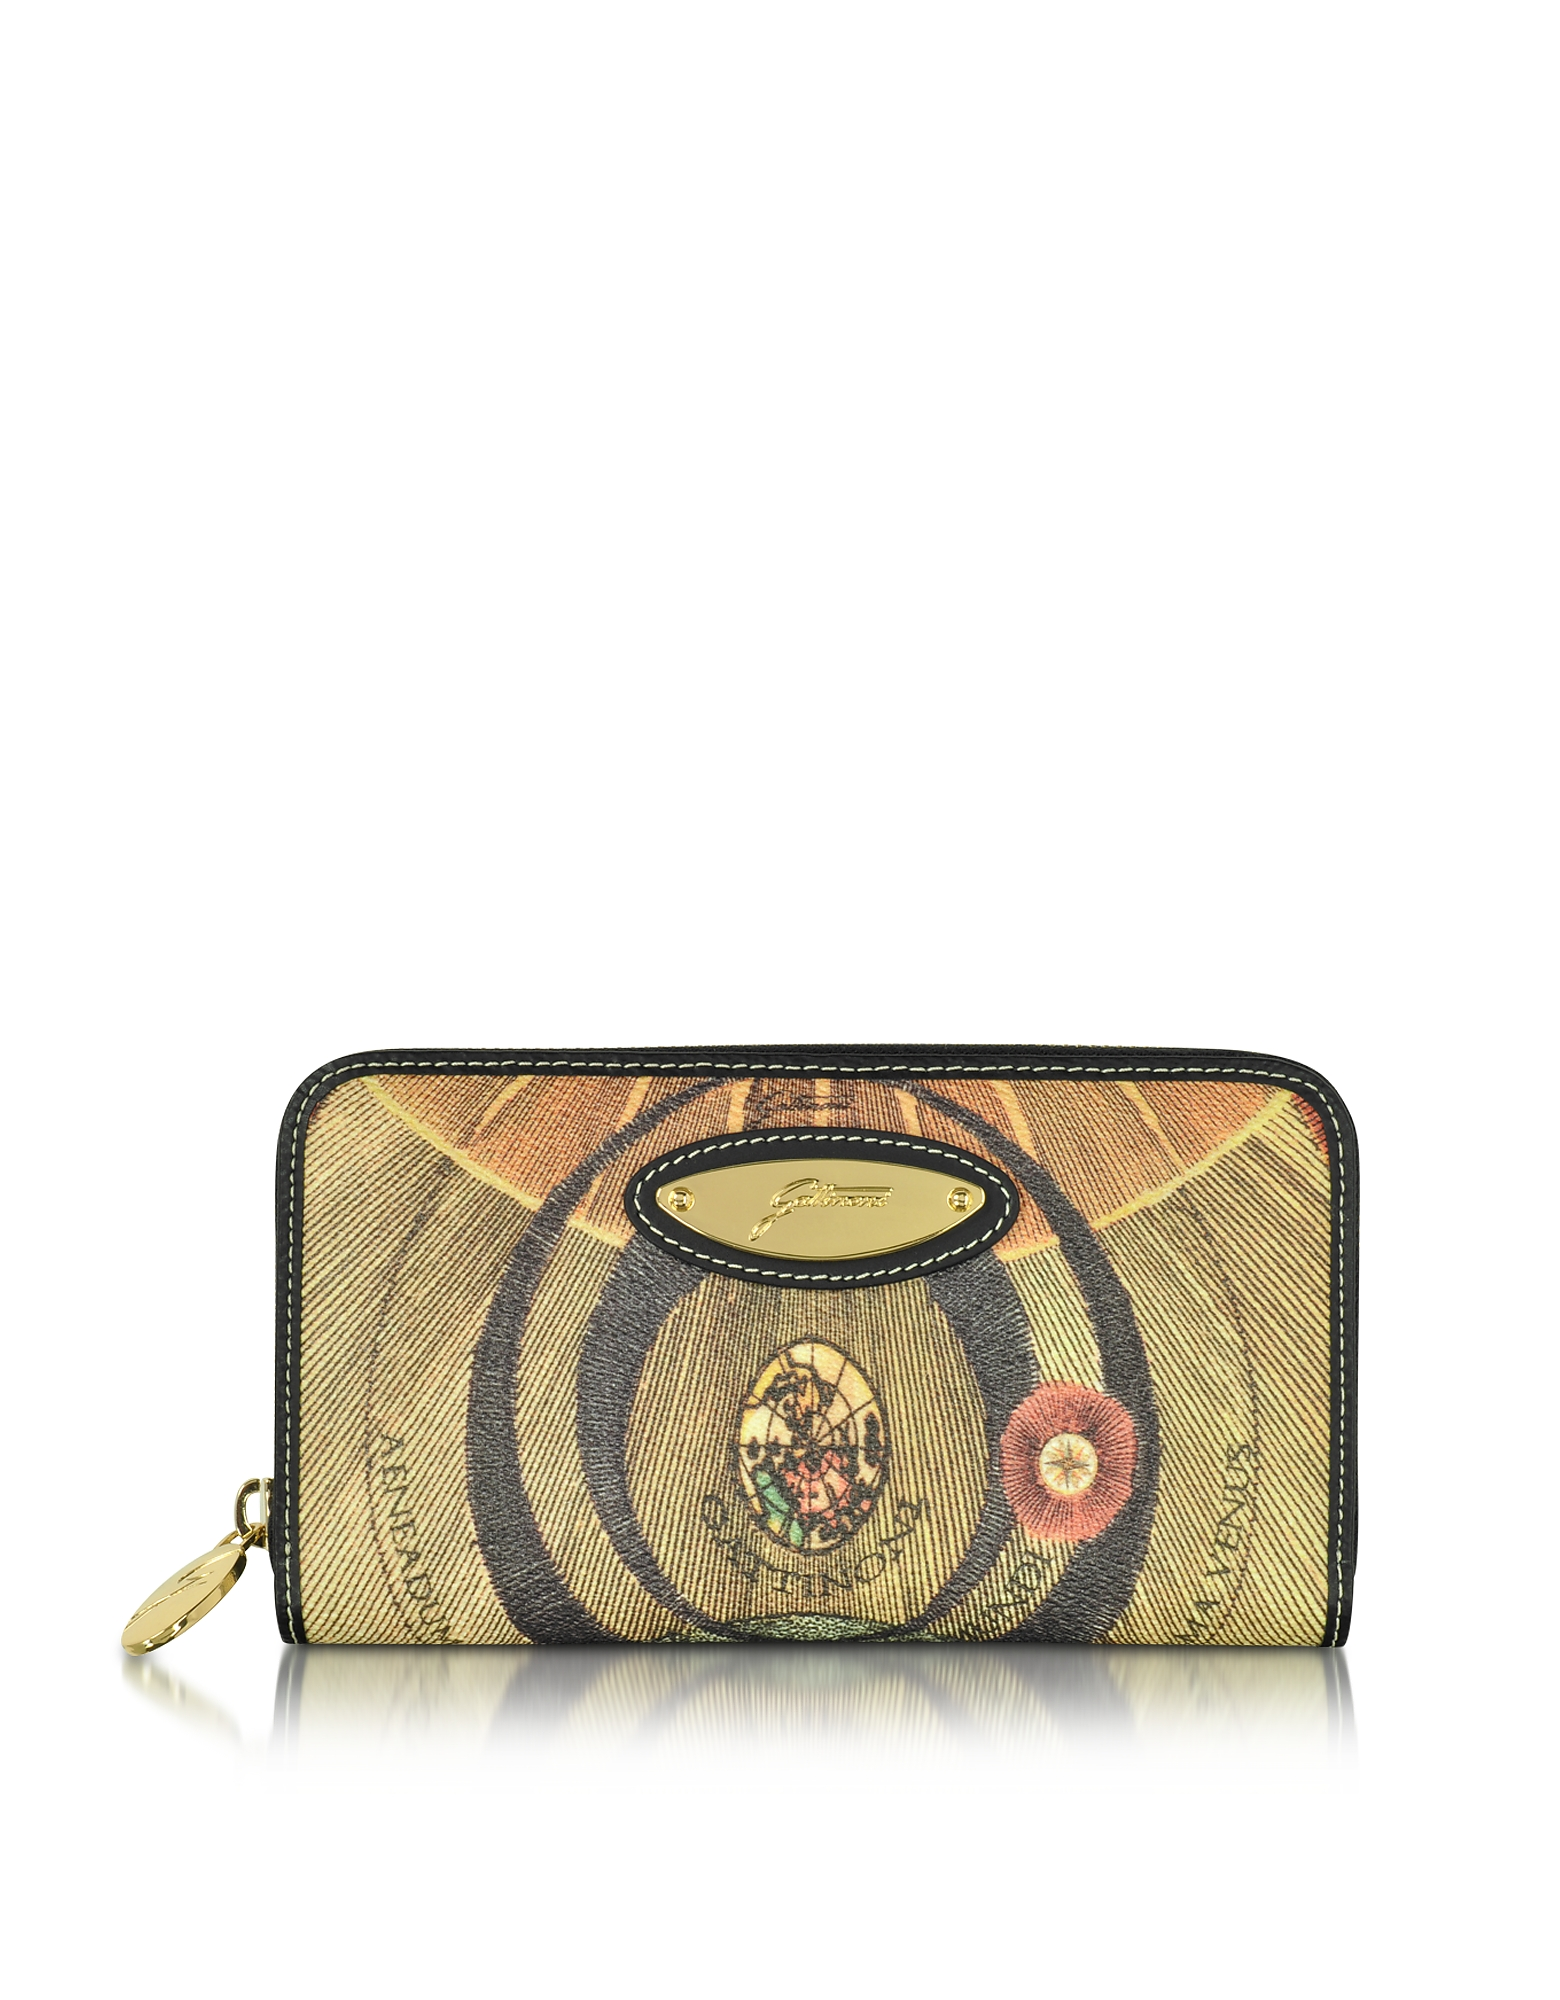 Gattinoni Handbags, Planetarium Coated Canvas Zip Around Women's Wallet